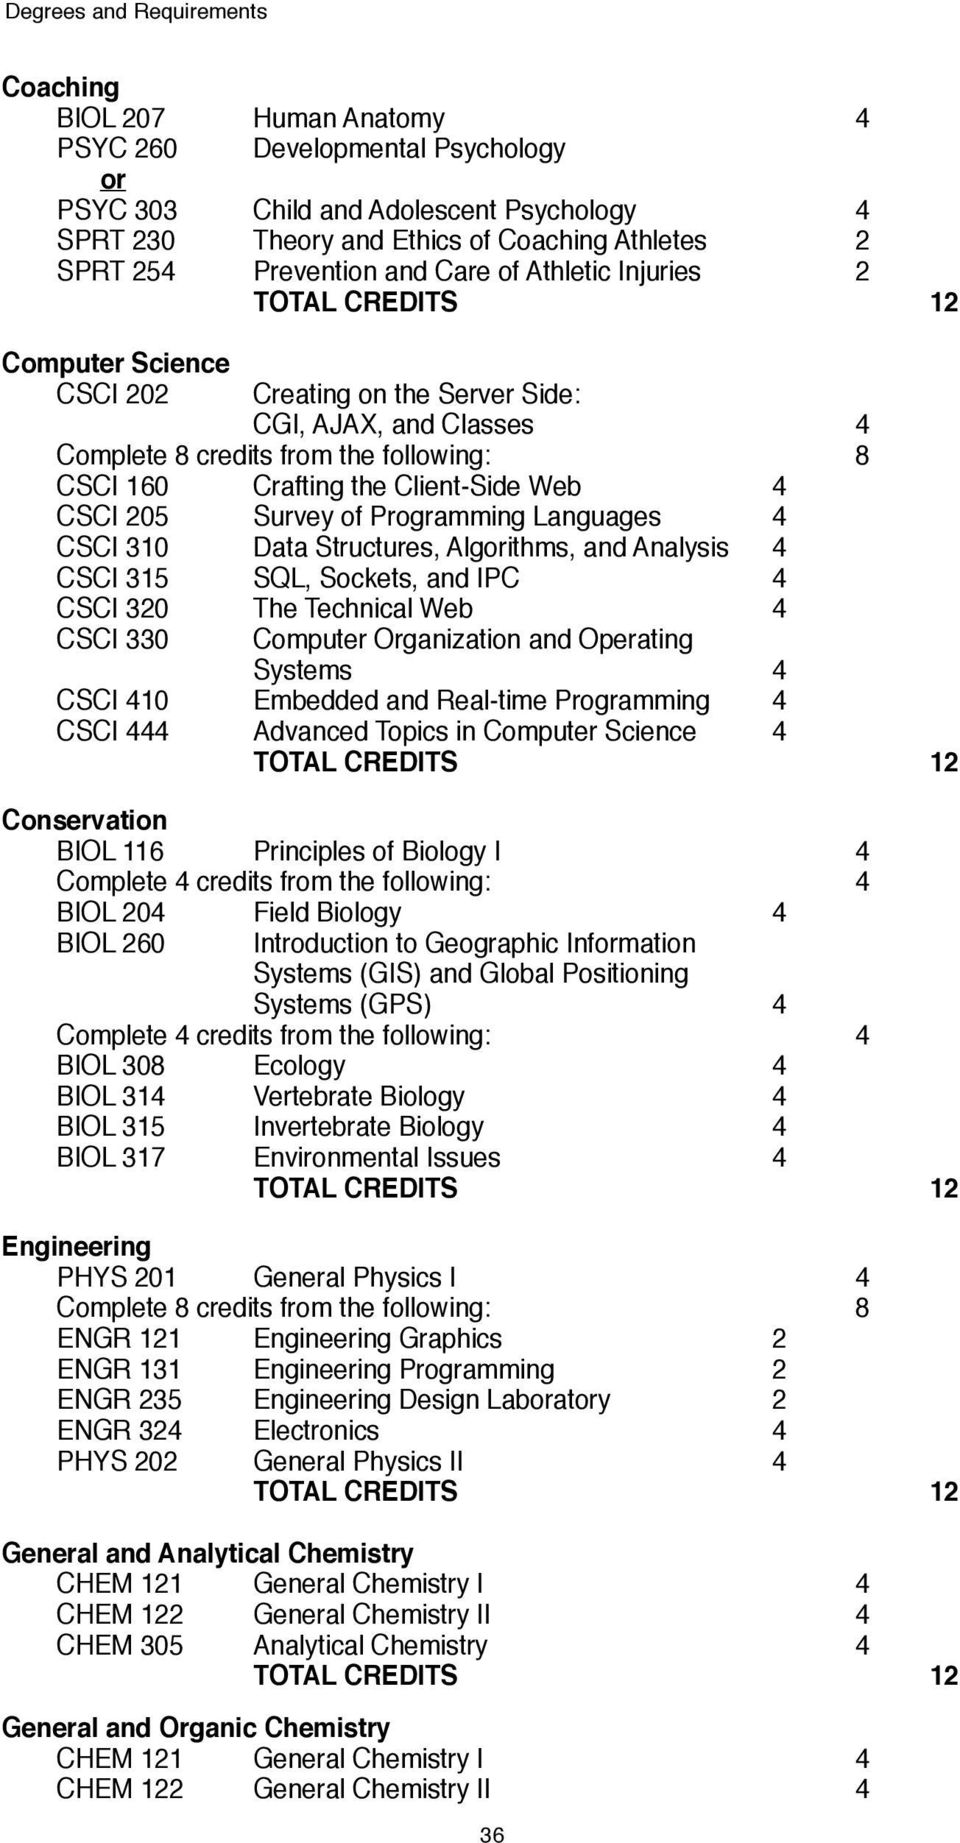 Programming Languages 4 CSCI 310 Data Structures, Algorithms, and Analysis 4 CSCI 315 SQL, Sockets, and IPC 4 CSCI 320 The Technical Web 4 CSCI 330 Computer Organization and Operating Systems 4 CSCI